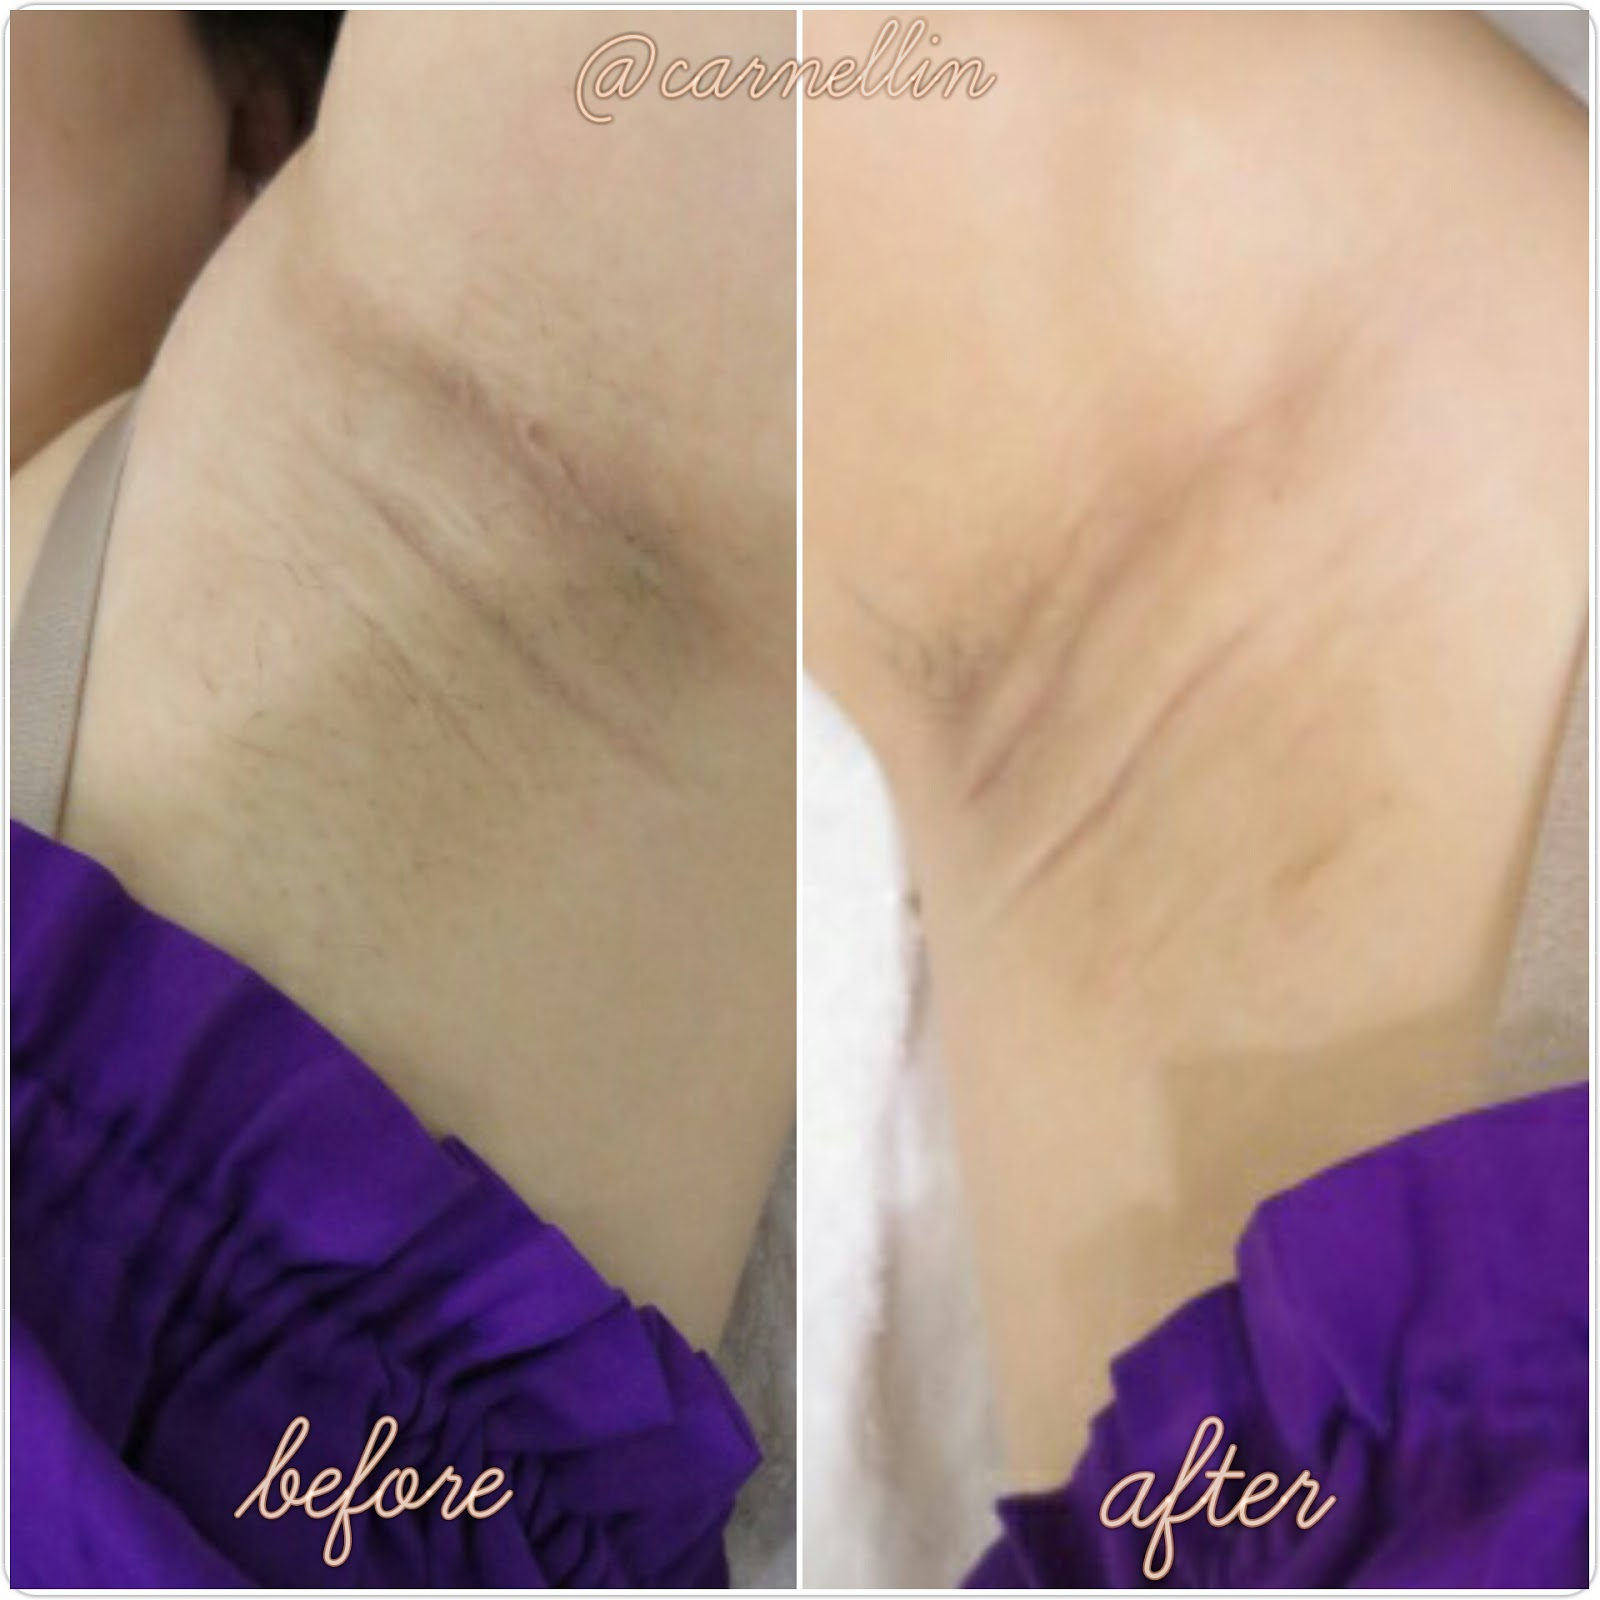 And above is my underarm condition before and after the treatment The treatment itself is really fast around 15 minutes Which include cleansing applying